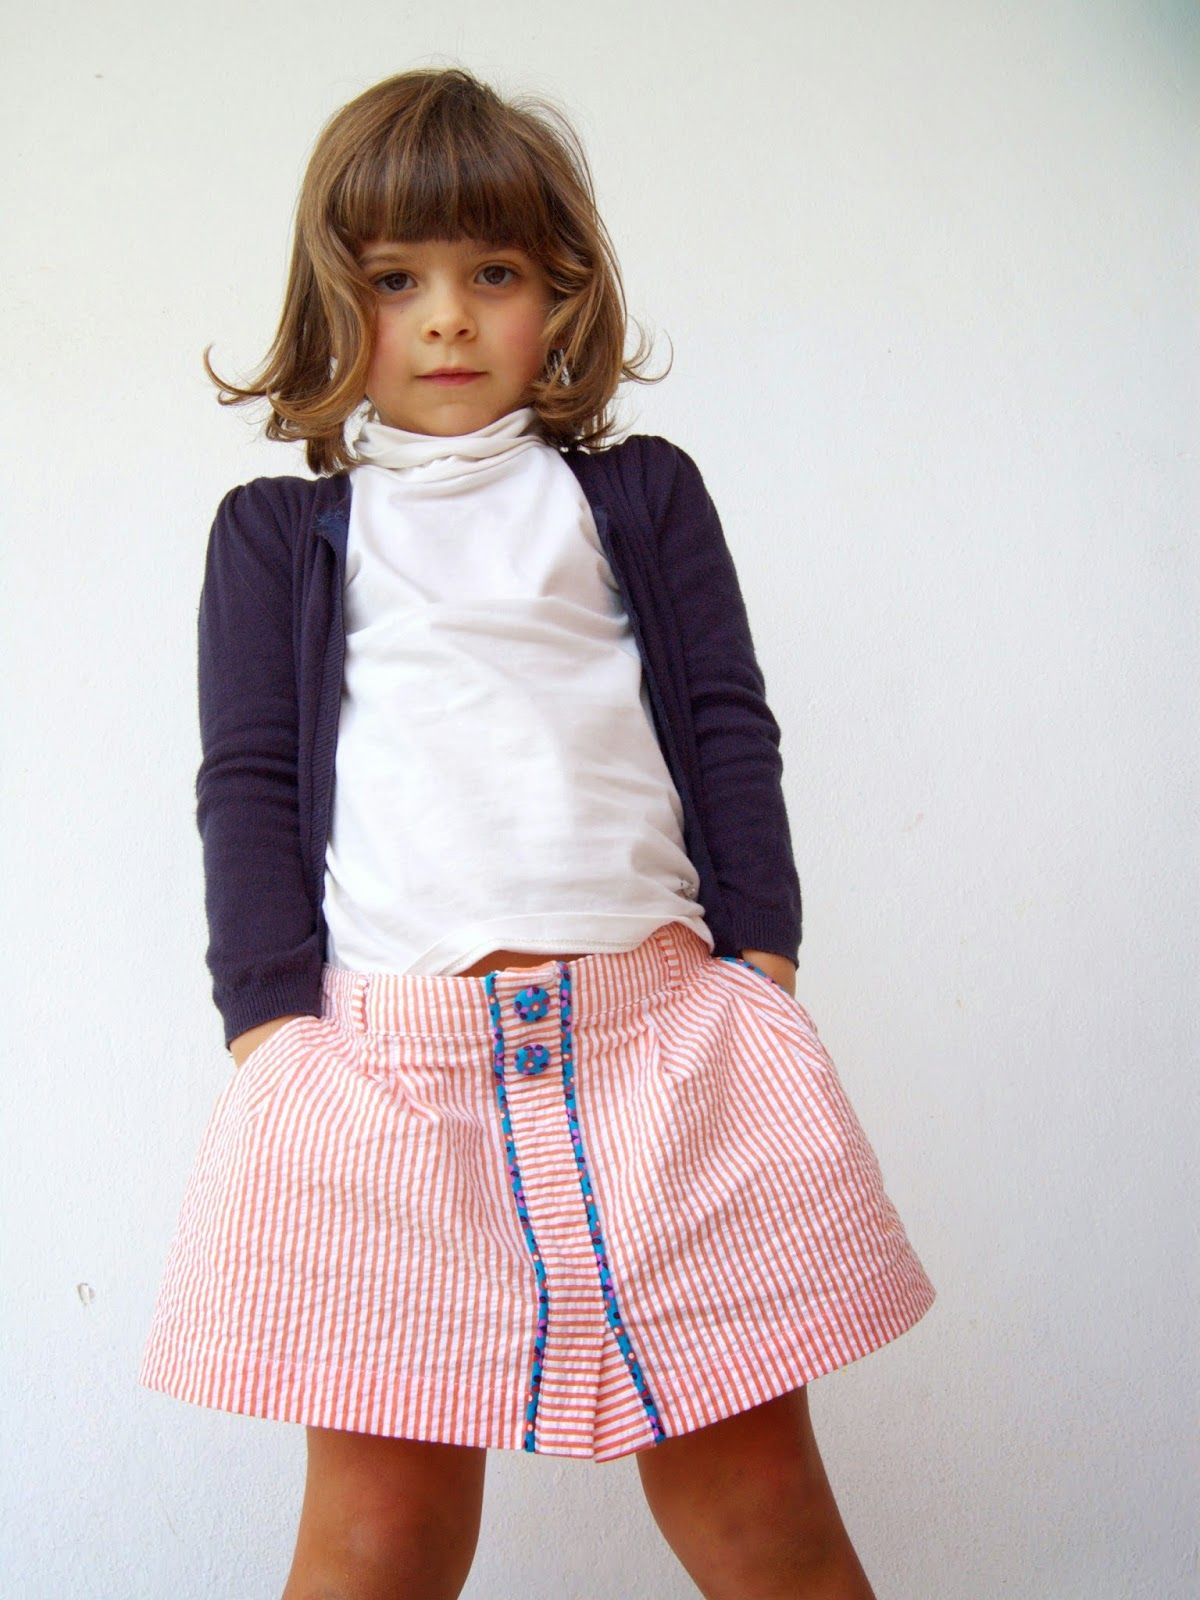 Figgy's Ayashe skirt by DoGuincho